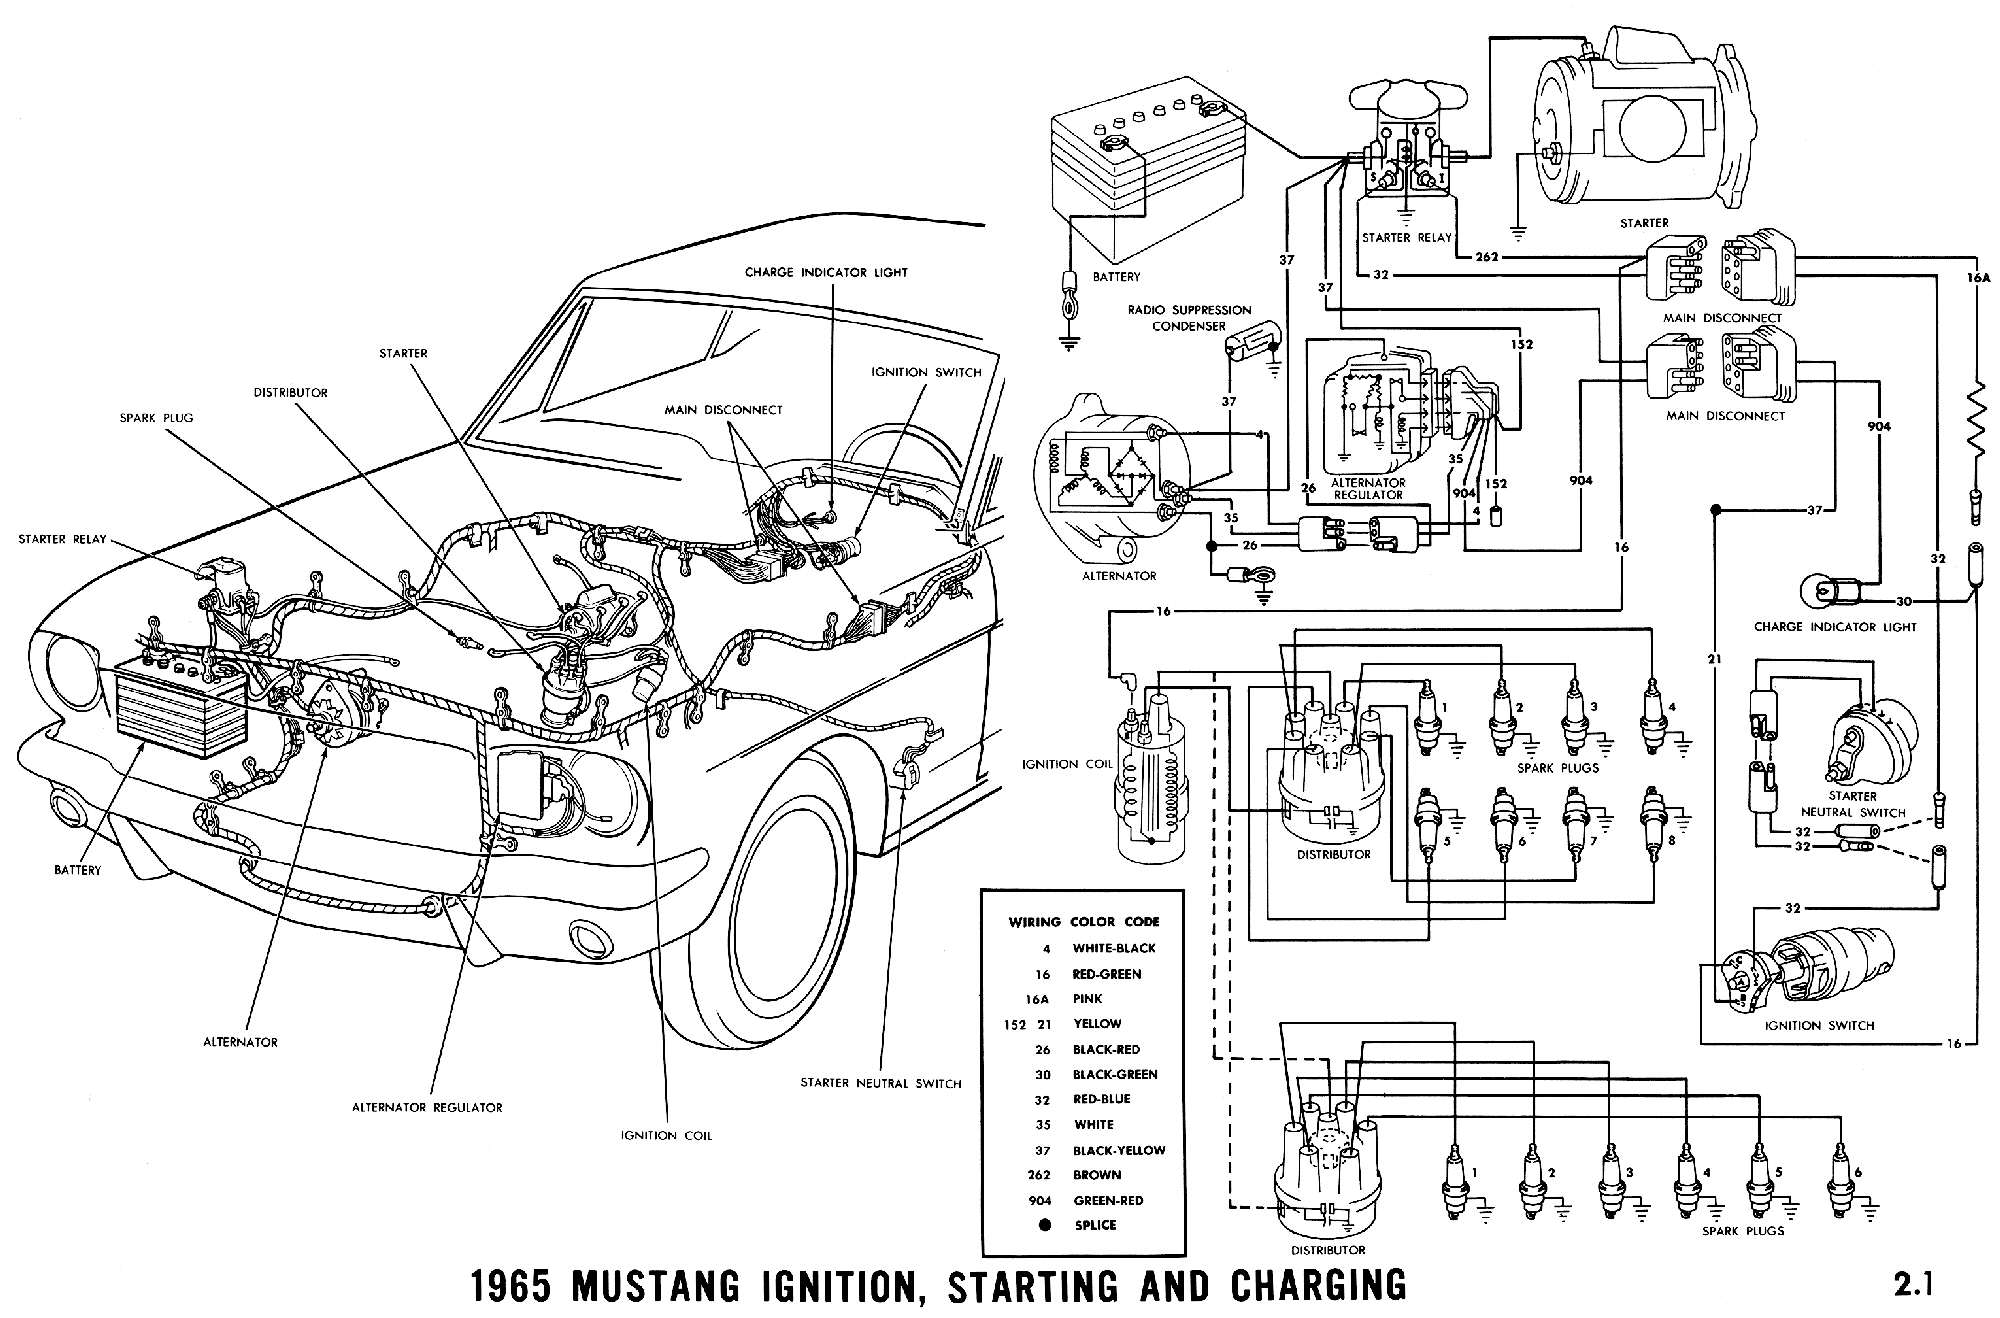 1969 mustang fuse box wiring diagram todays1969 mustang fuse box location box wiring diagram 1969 mustang back window 1969 mustang fuse box